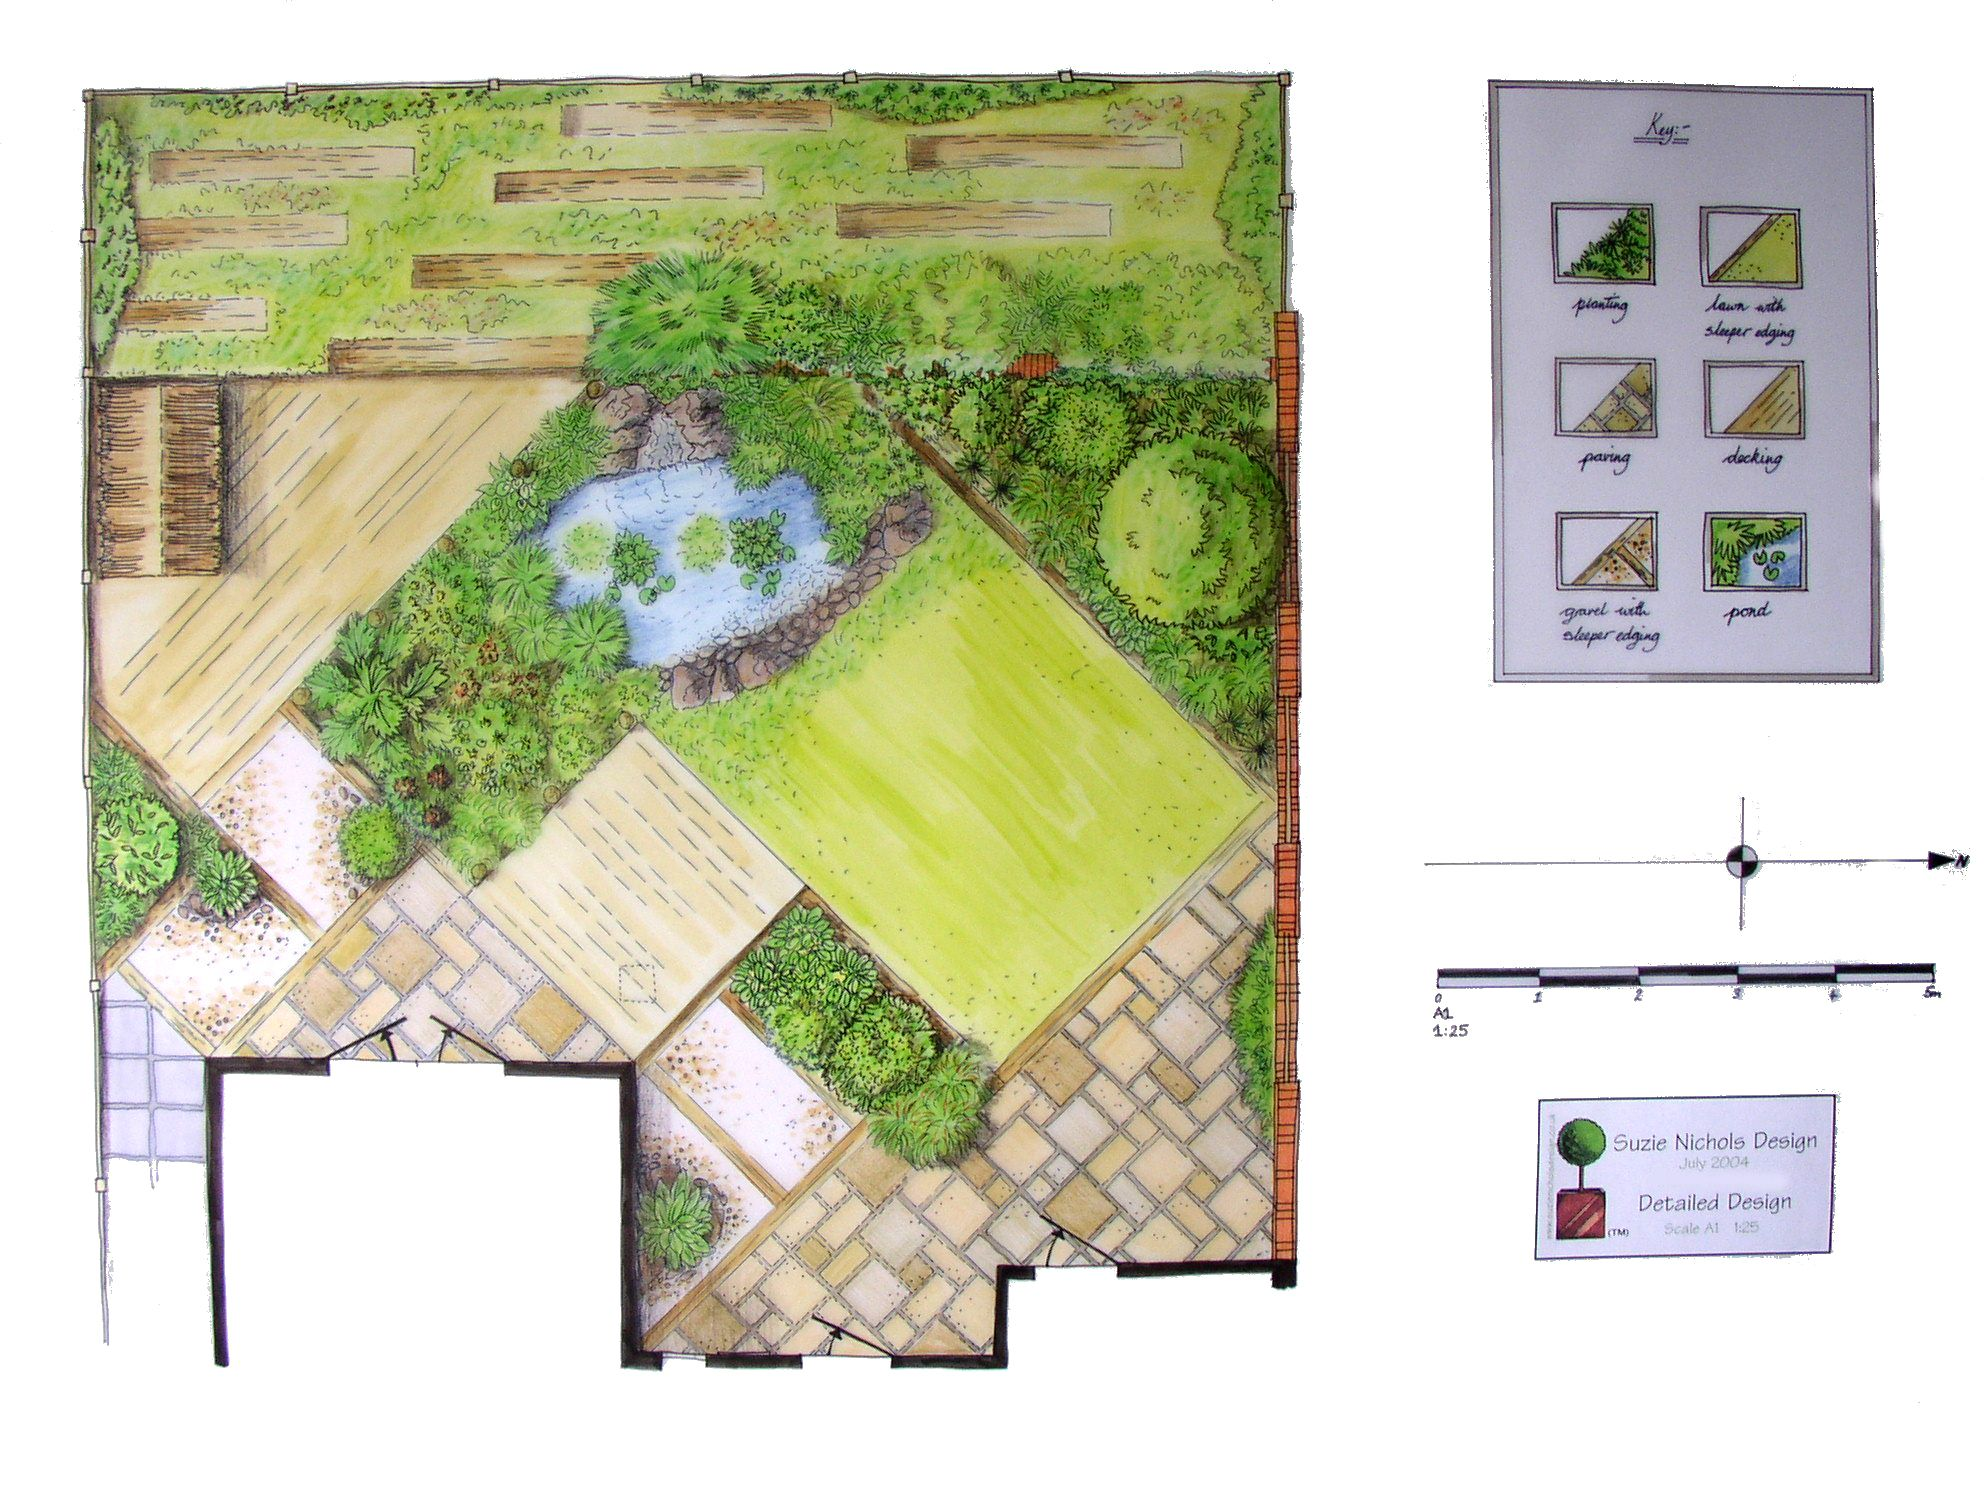 Large image of Suzie Nichols Wildlife Garden design Landscape